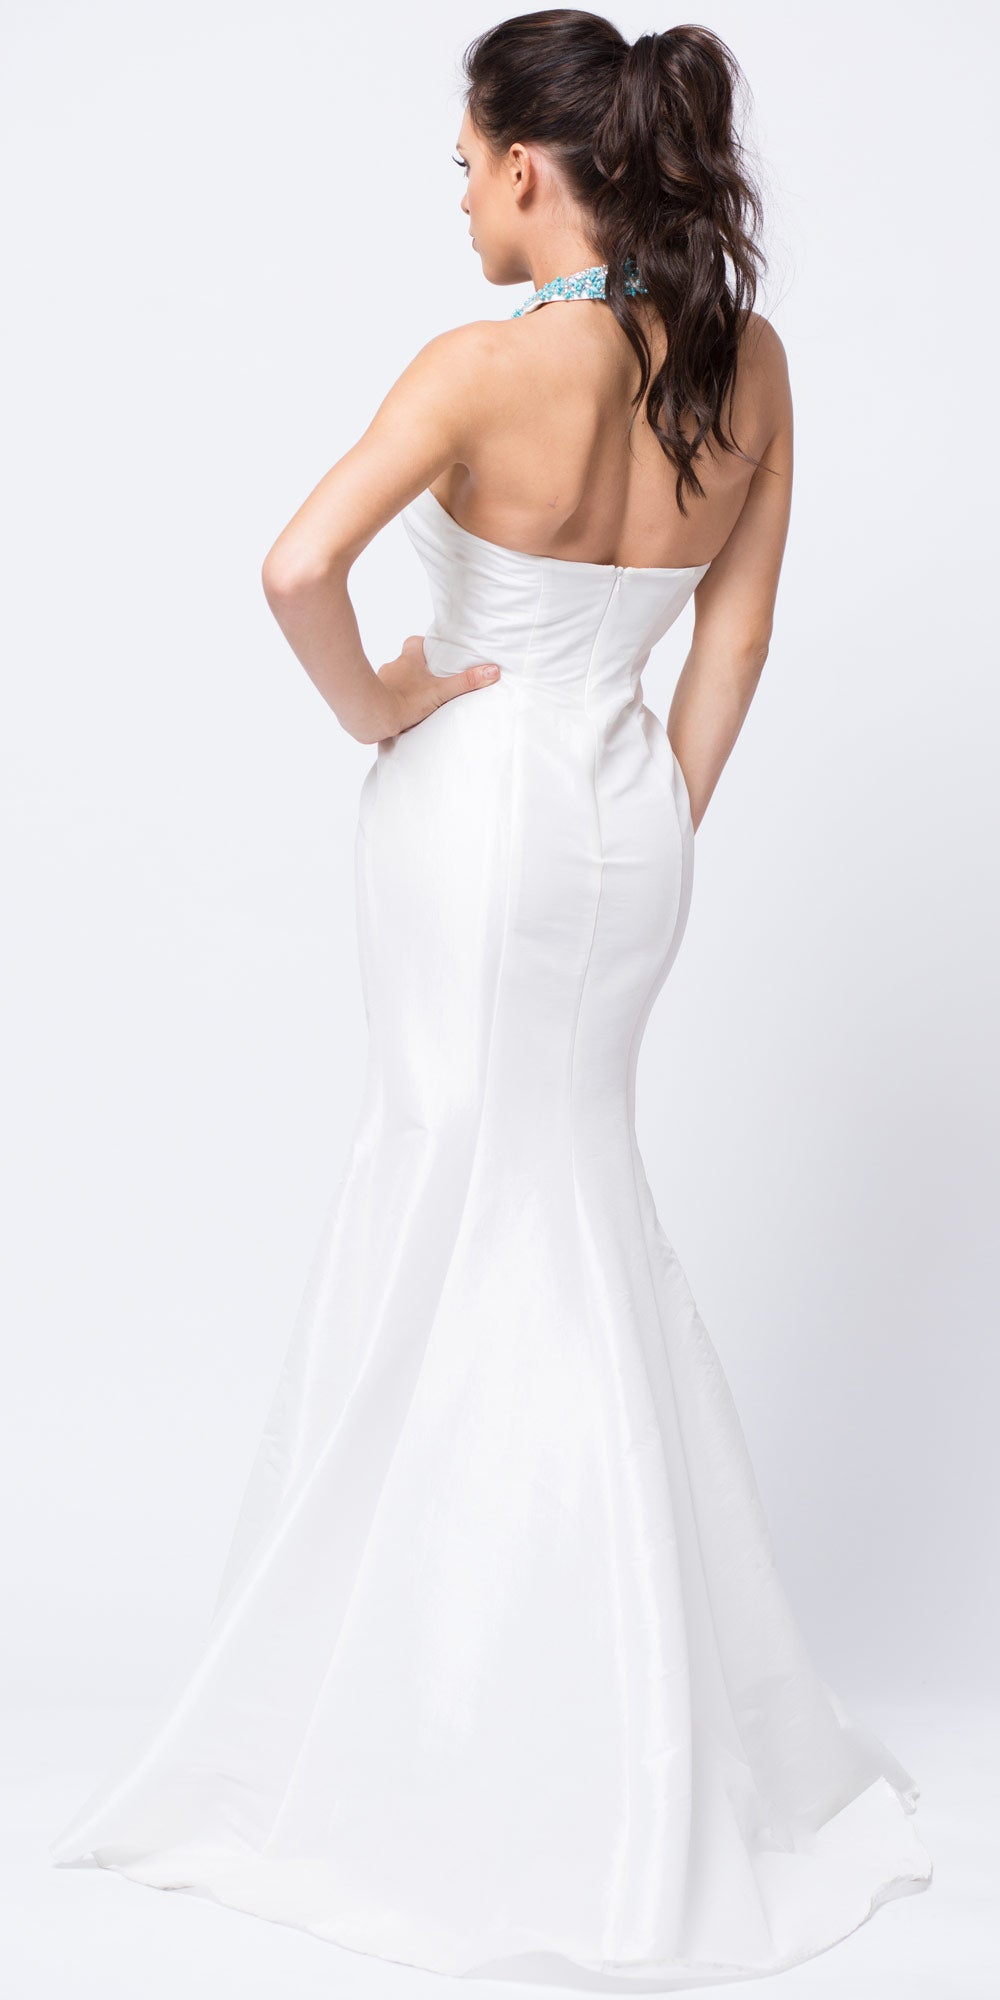 Image of Bejeweled Halter Necklace Fit-n-flare Long Prom Dress back in Off White